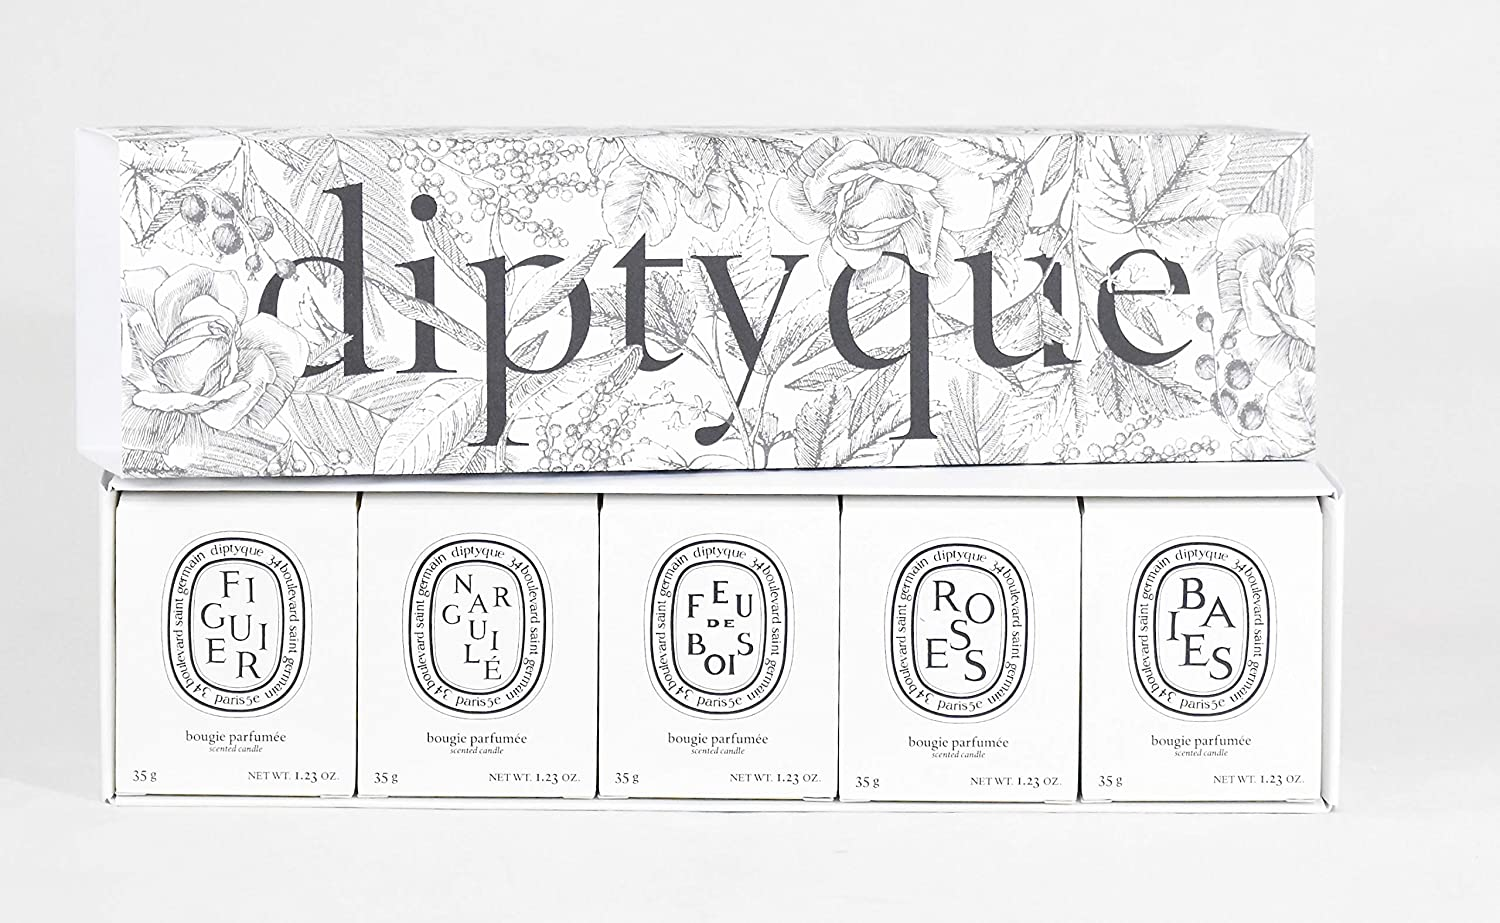 Buy Diptyque Set of Five Scented Candles   Baies, Roses, Figuier ...